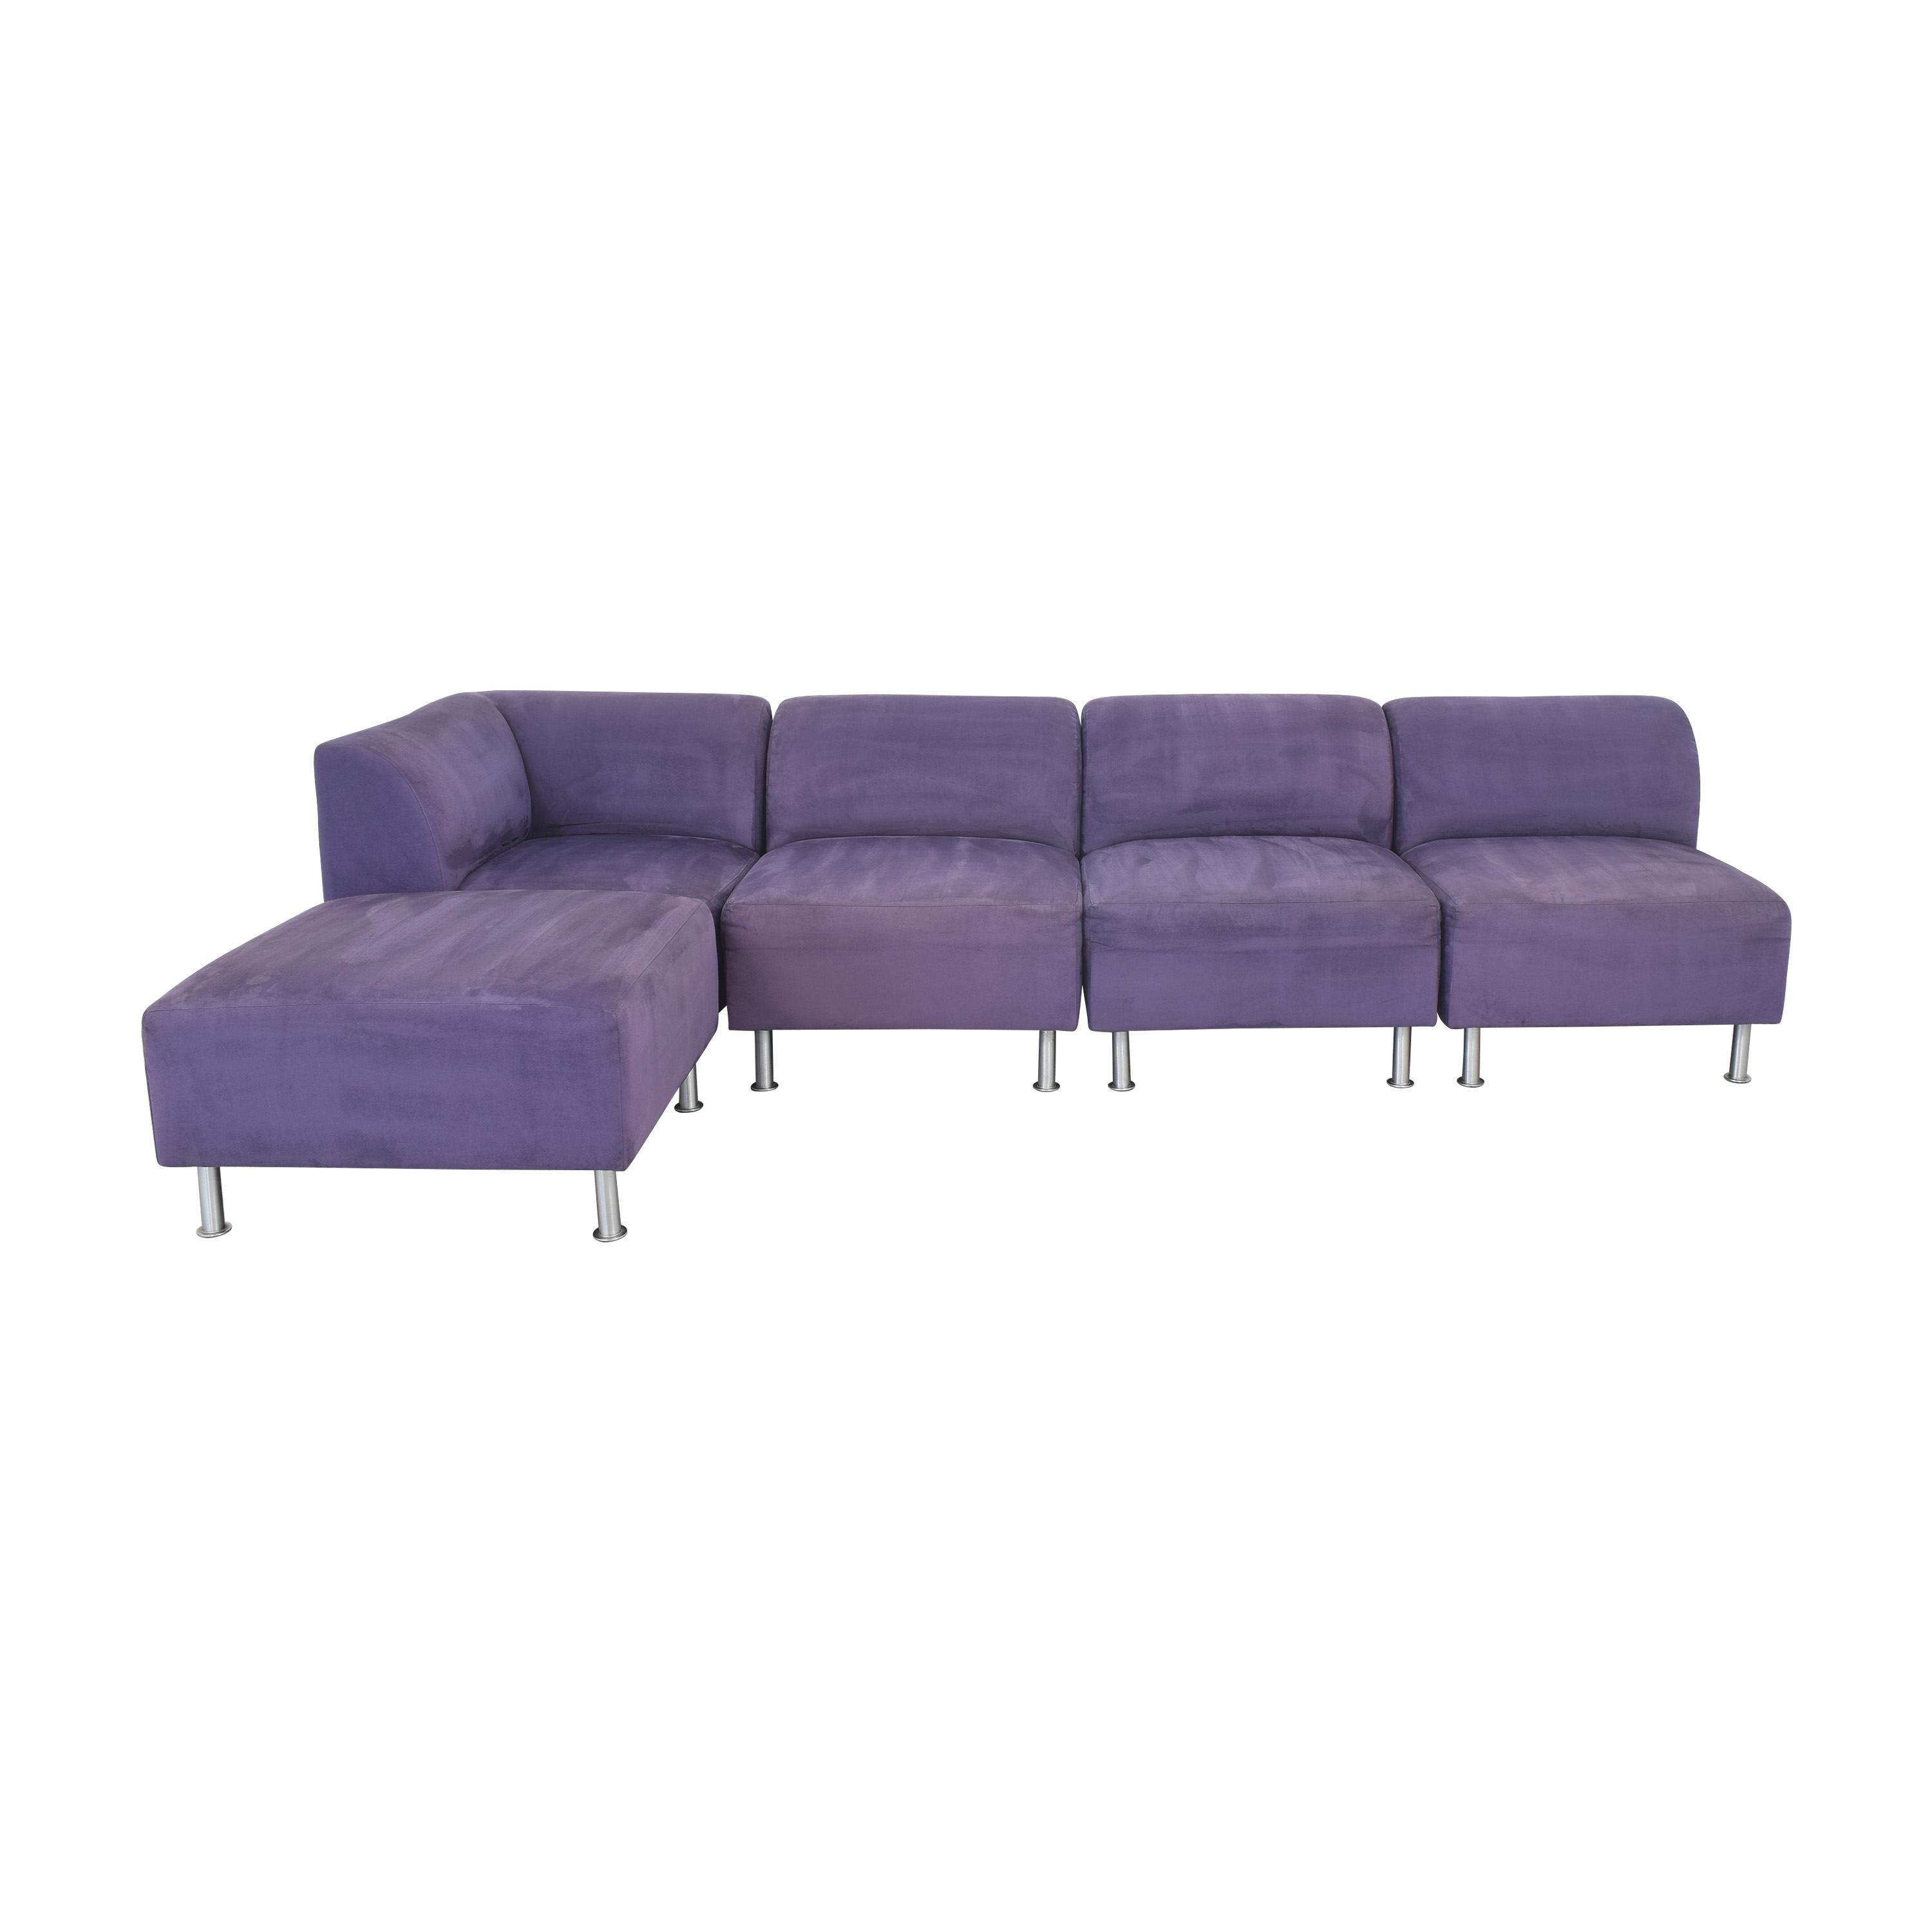 Jensen-Lewis Jensen-Lewis Modular Sectional Sofa with Ottoman dimensions